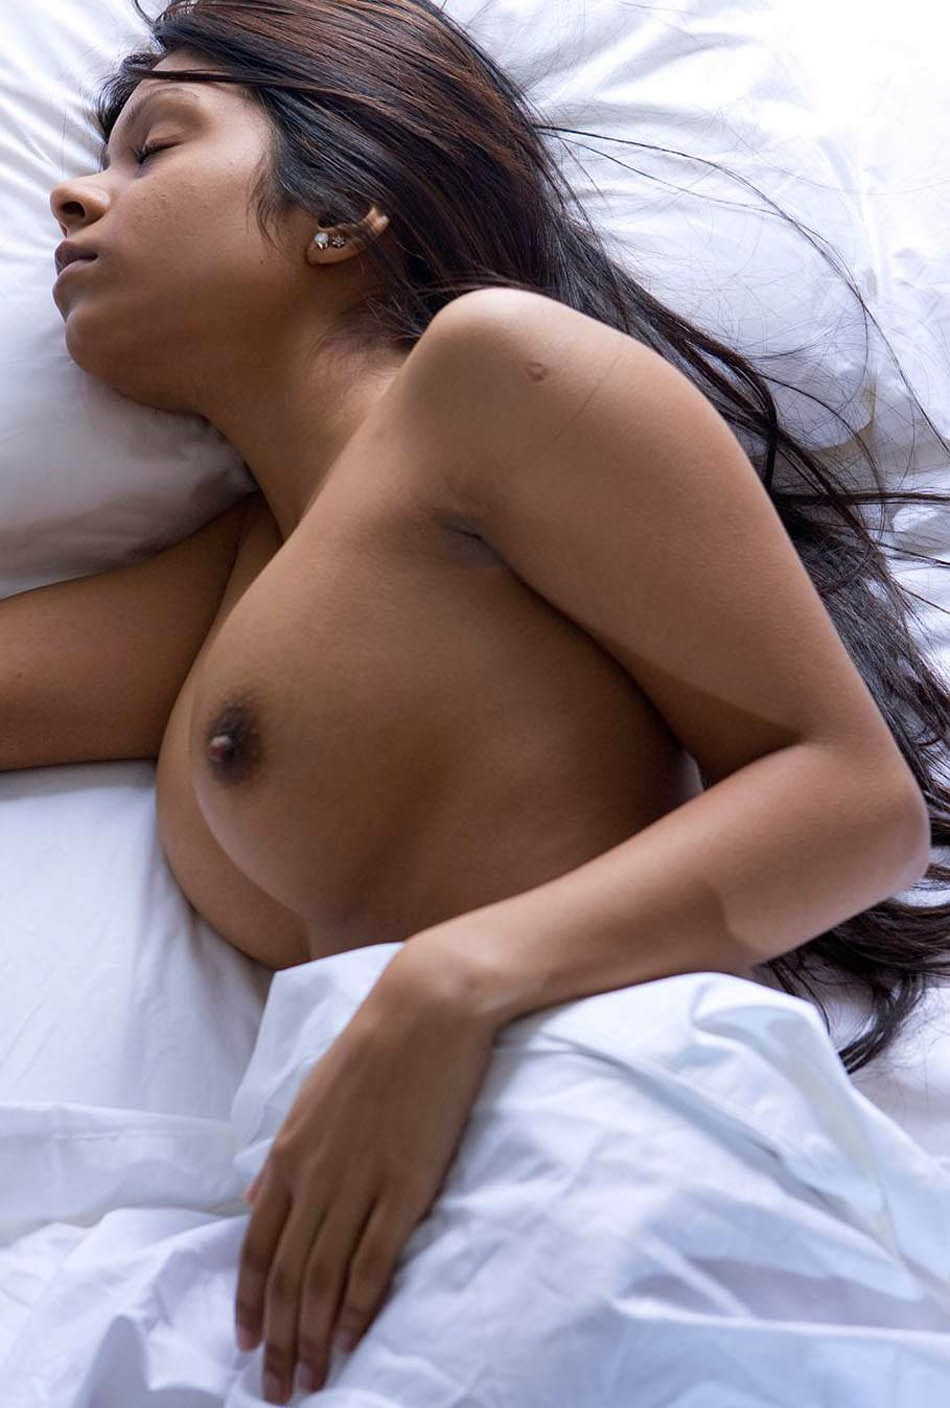 Nude Indian Girls With Big Boobs